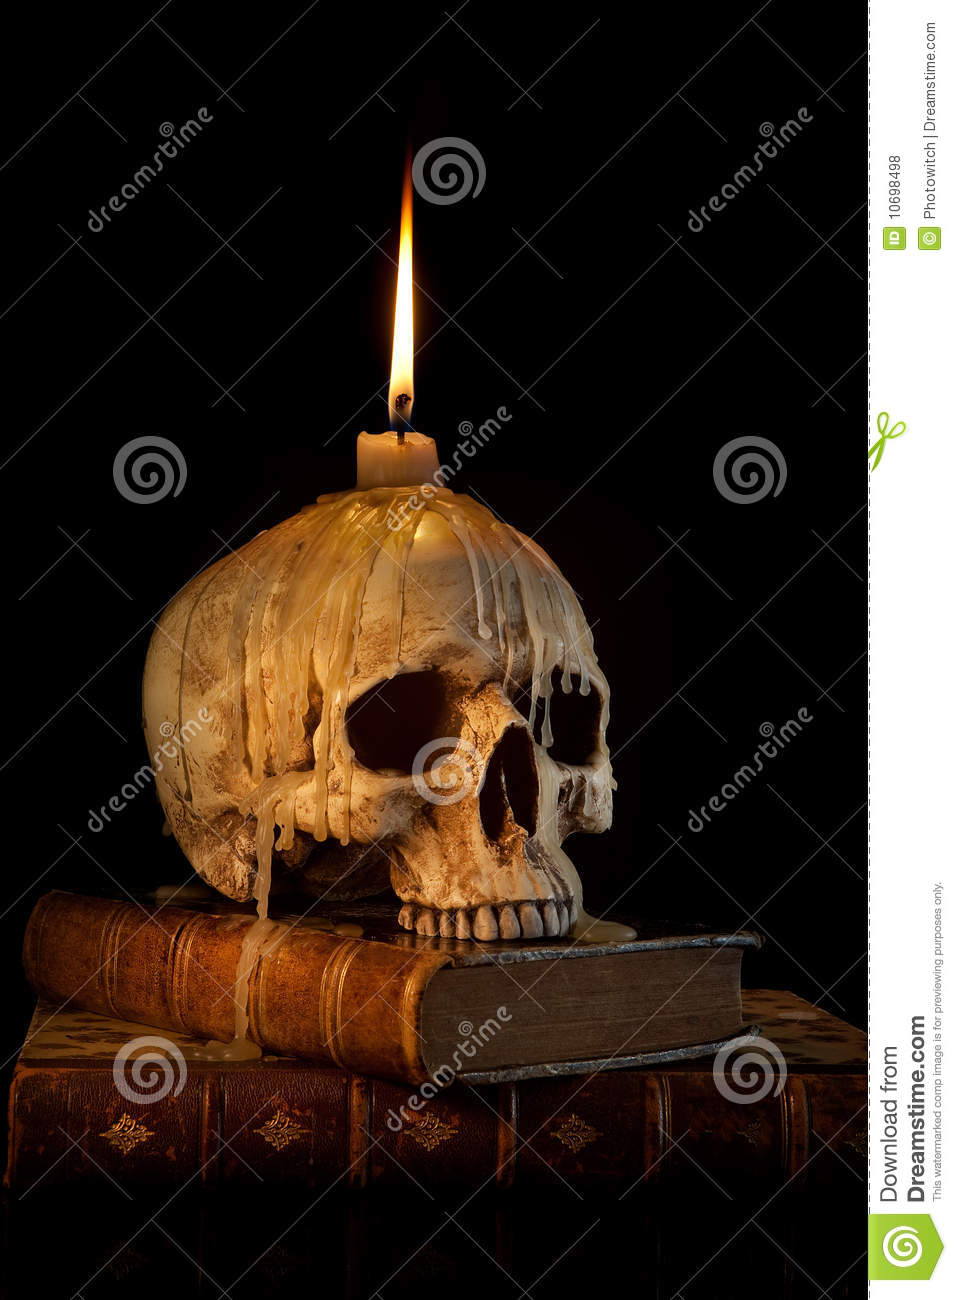 Free 3d Skull Wallpaper Candle On Skull 1 Royalty Free Stock Photos Image 10698498